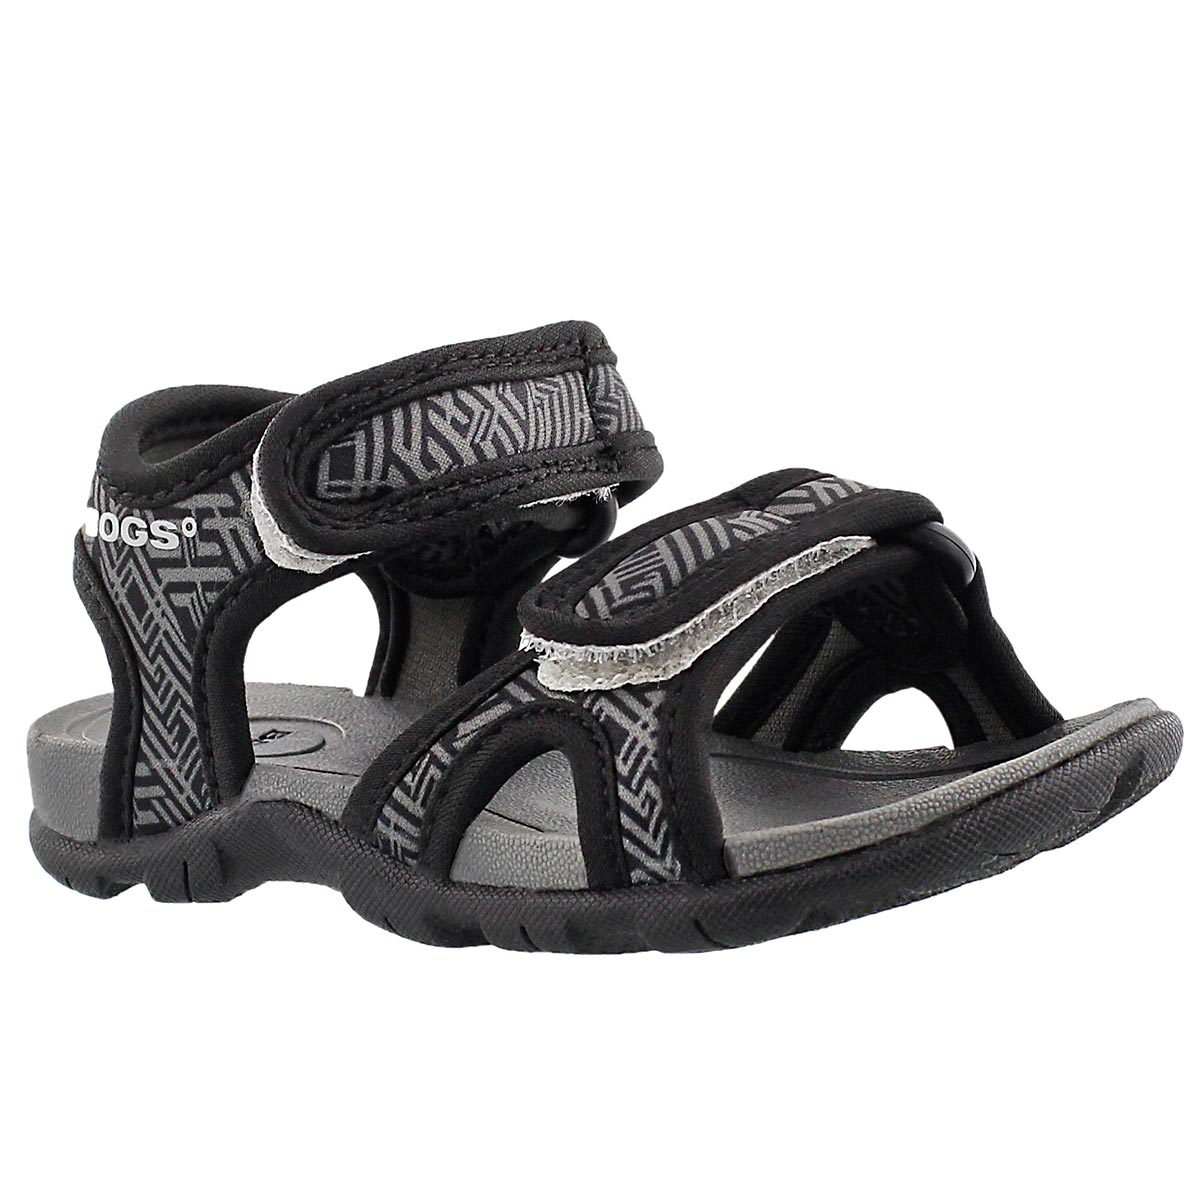 Infants' WHITEFISH SHATTER blk waterproof sandals